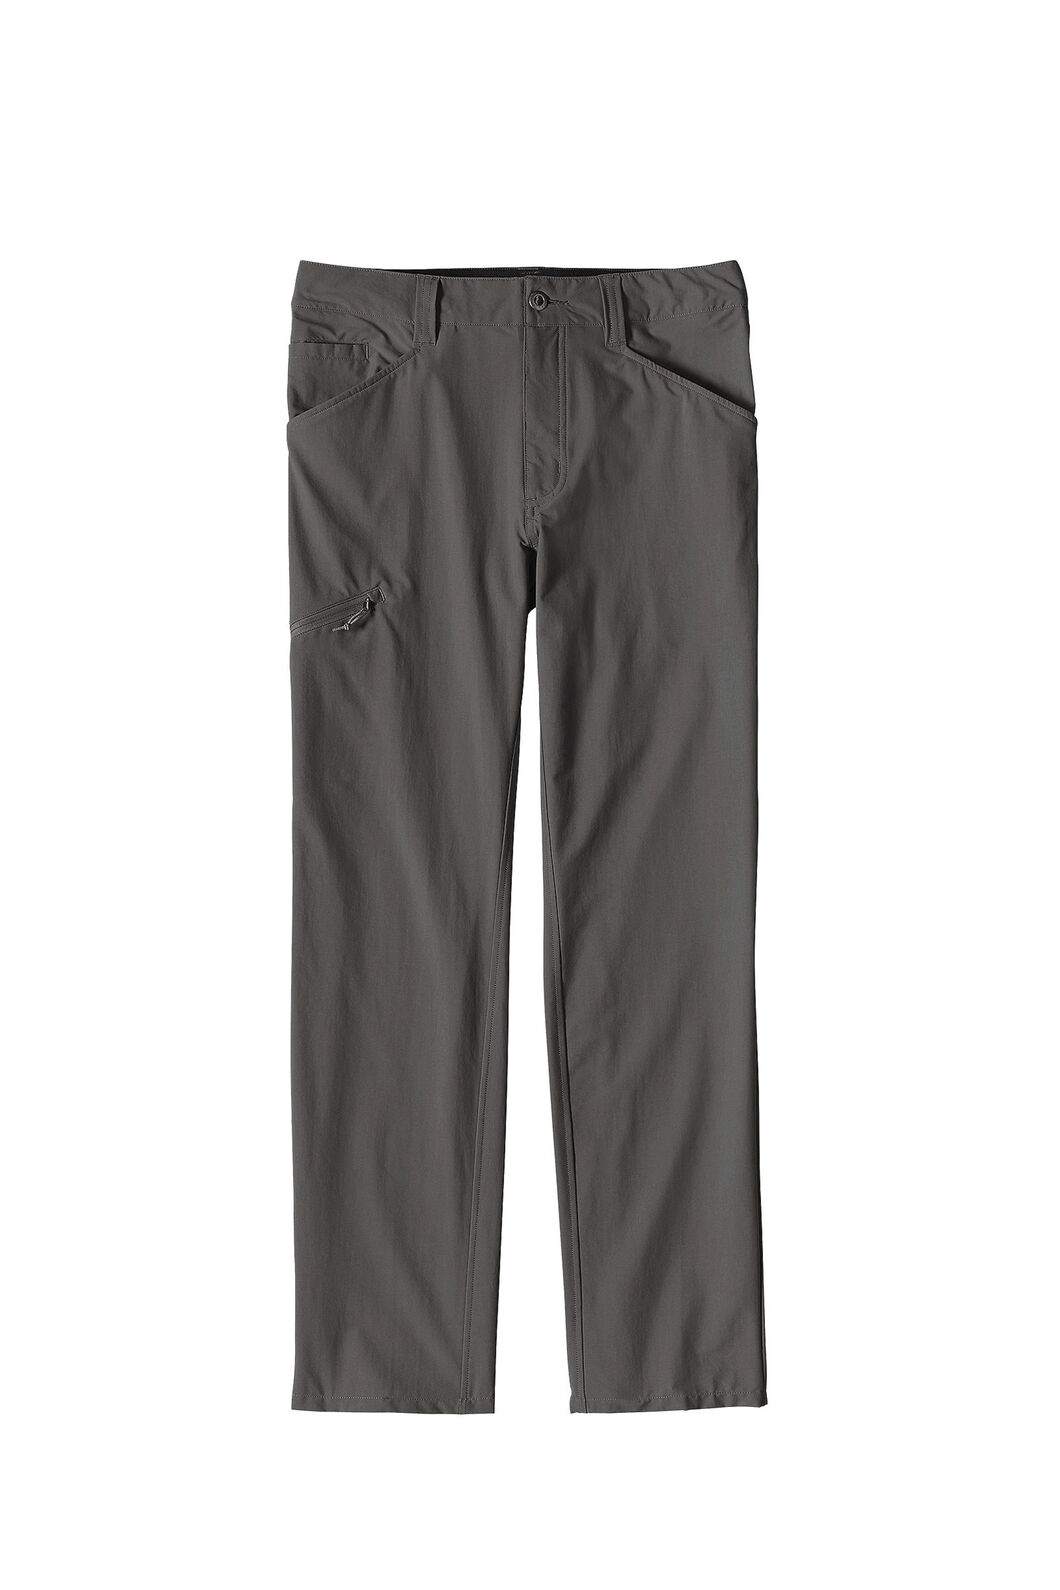 Patagonia Men's Quandary Pants Forge, FORGE GREY, hi-res